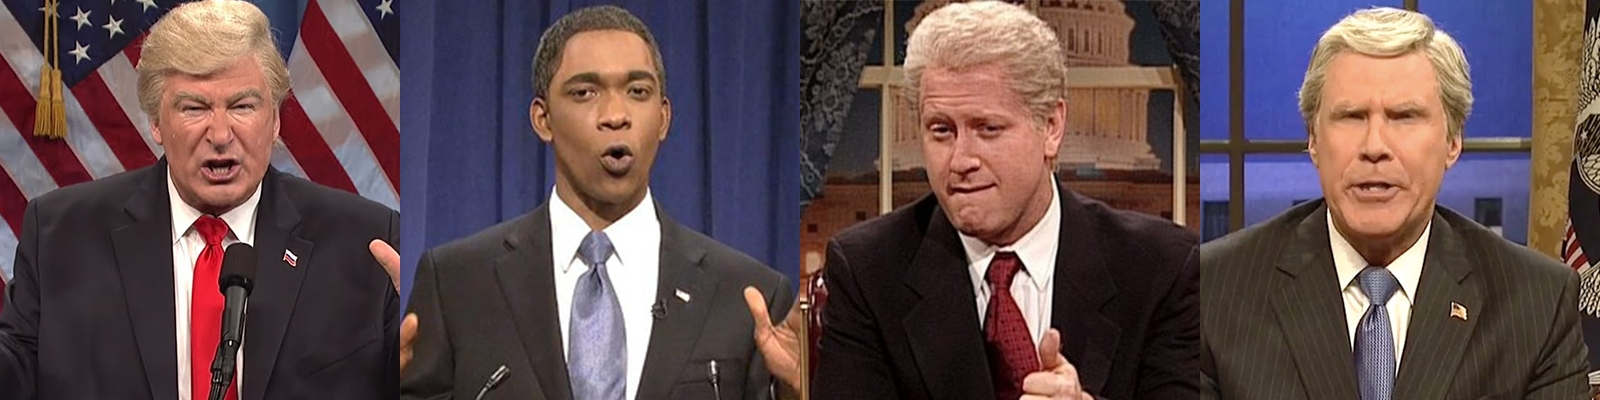 Here's Our Ranking Of Every Presidential Impression In The History Of 'Saturday Night Live'